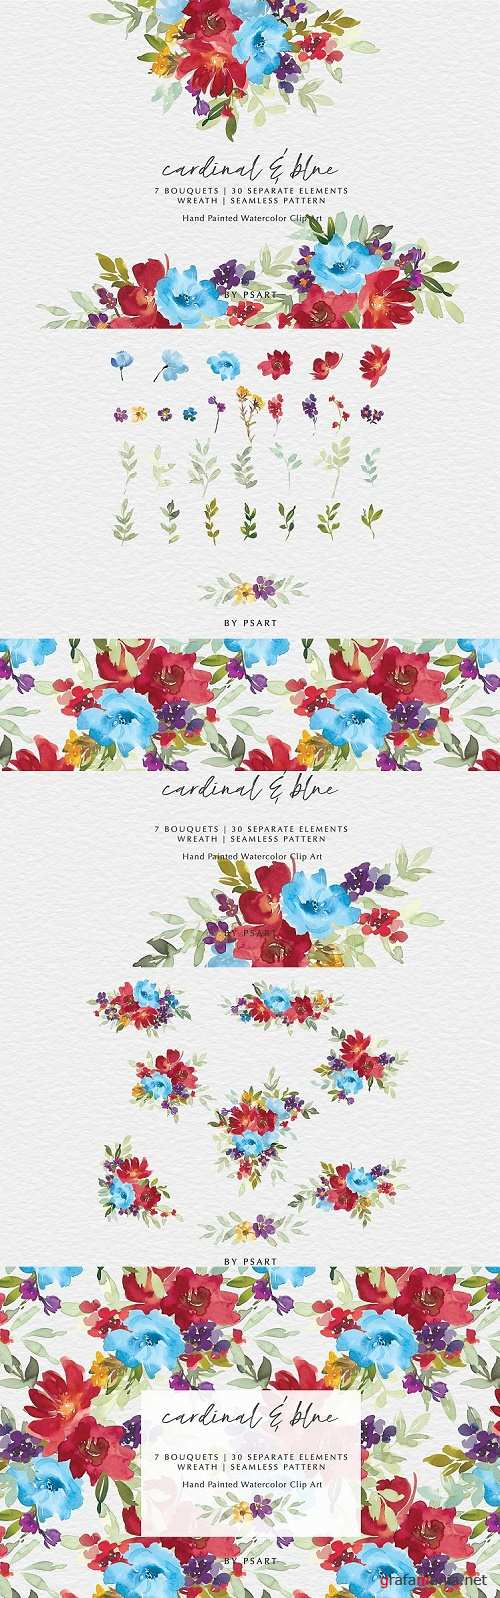 Cardinal & Blue Watercolor Floral Clipart Collection - 465776